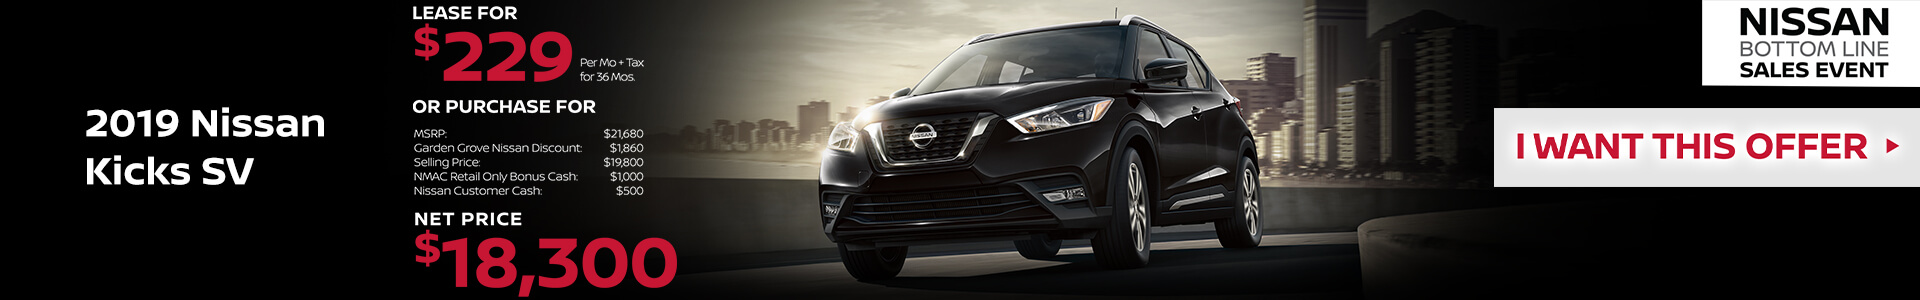 2019 Nissan Kicks Lease for $229